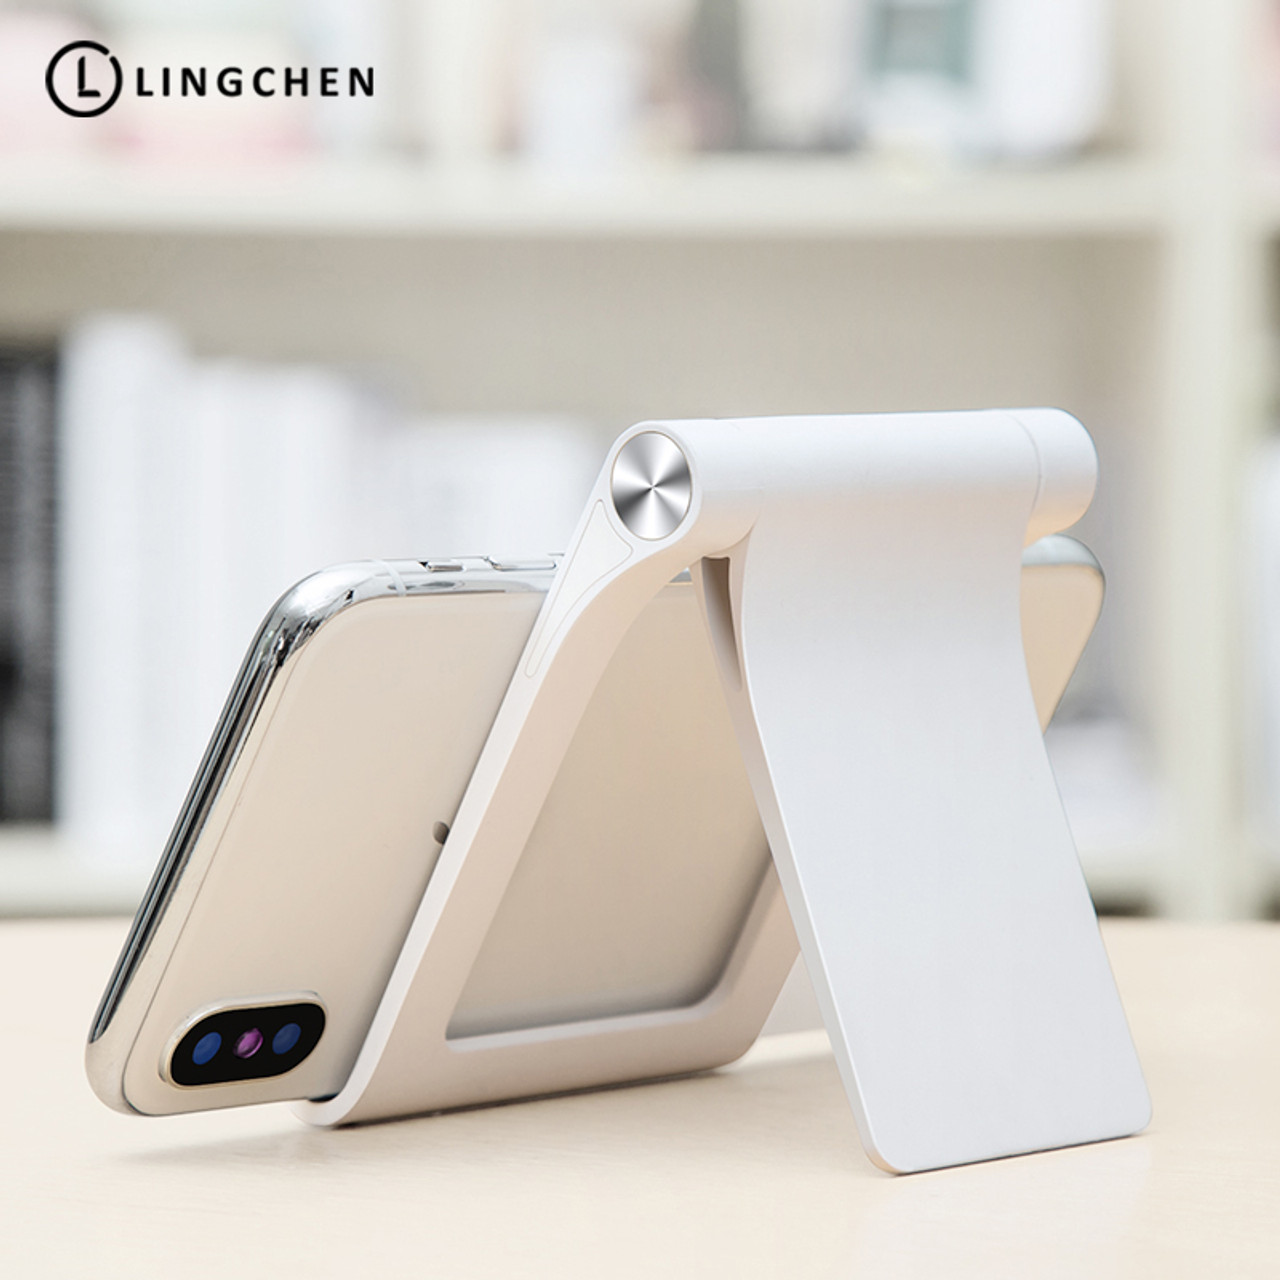 173e67c7db2ca0 LINGCHEN Universal Mobile Phone Holder Stand Foldable Holder For Phone For  iPhone Desk Tablet Stand Cell ...